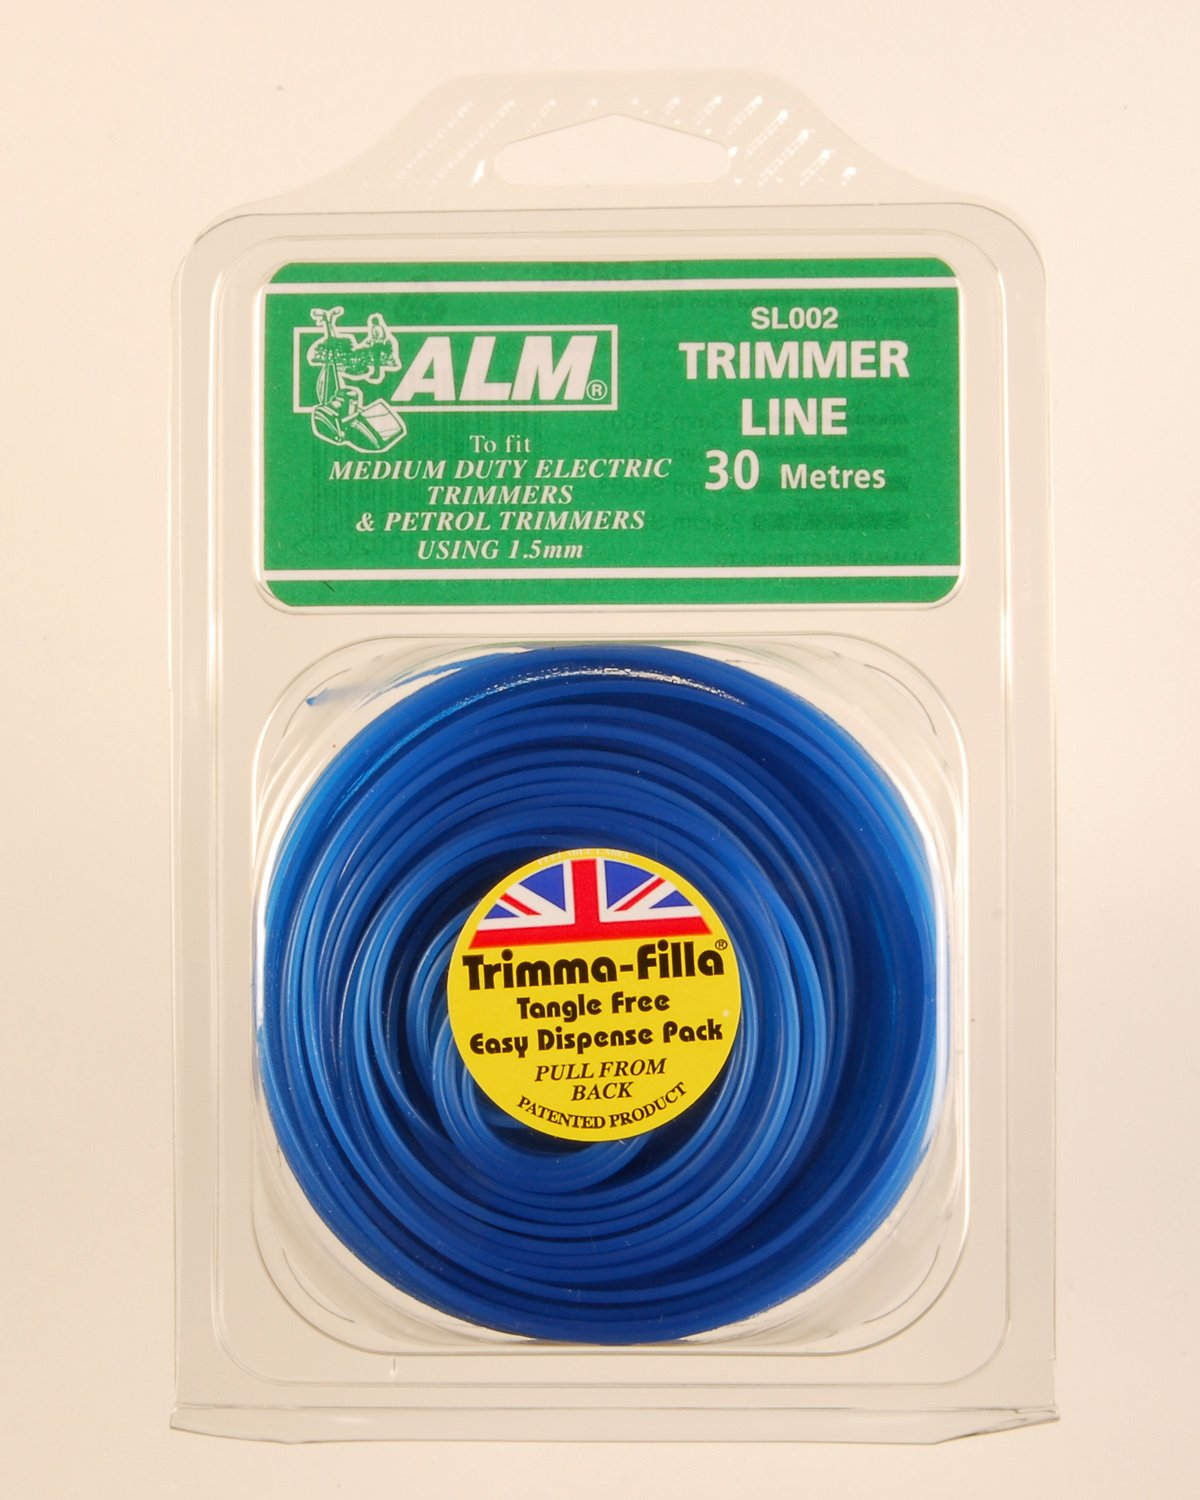 Trimmer Line: 1.5mm 30m To fit all makes of medium duty electric and light petrol trimmers using 1.5mm trimmer line contains 30 metres Blue